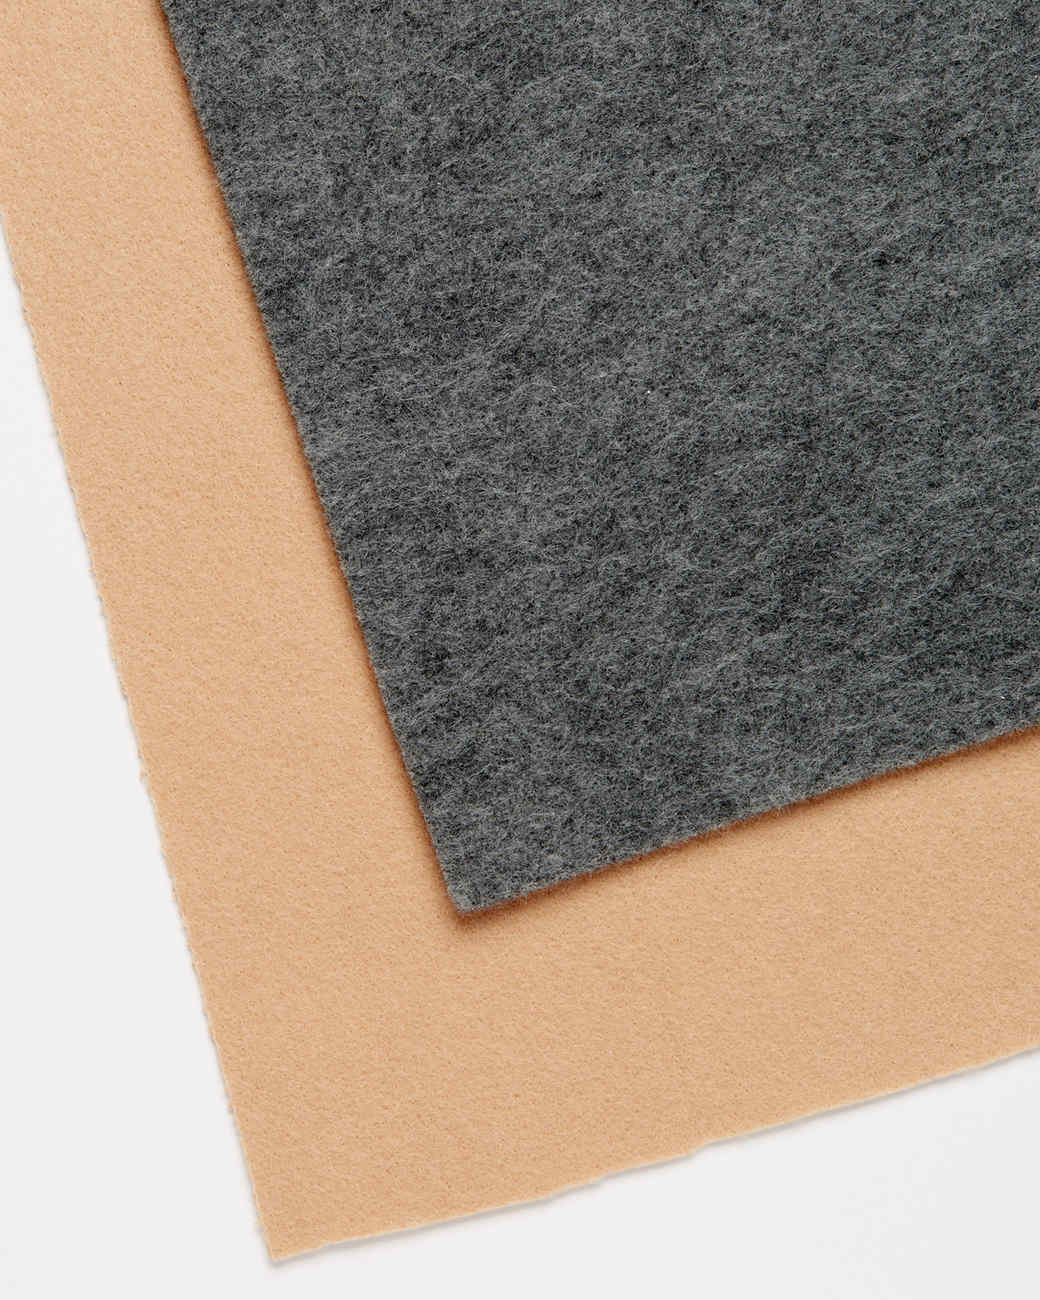 tan and charcoal embroidery felt